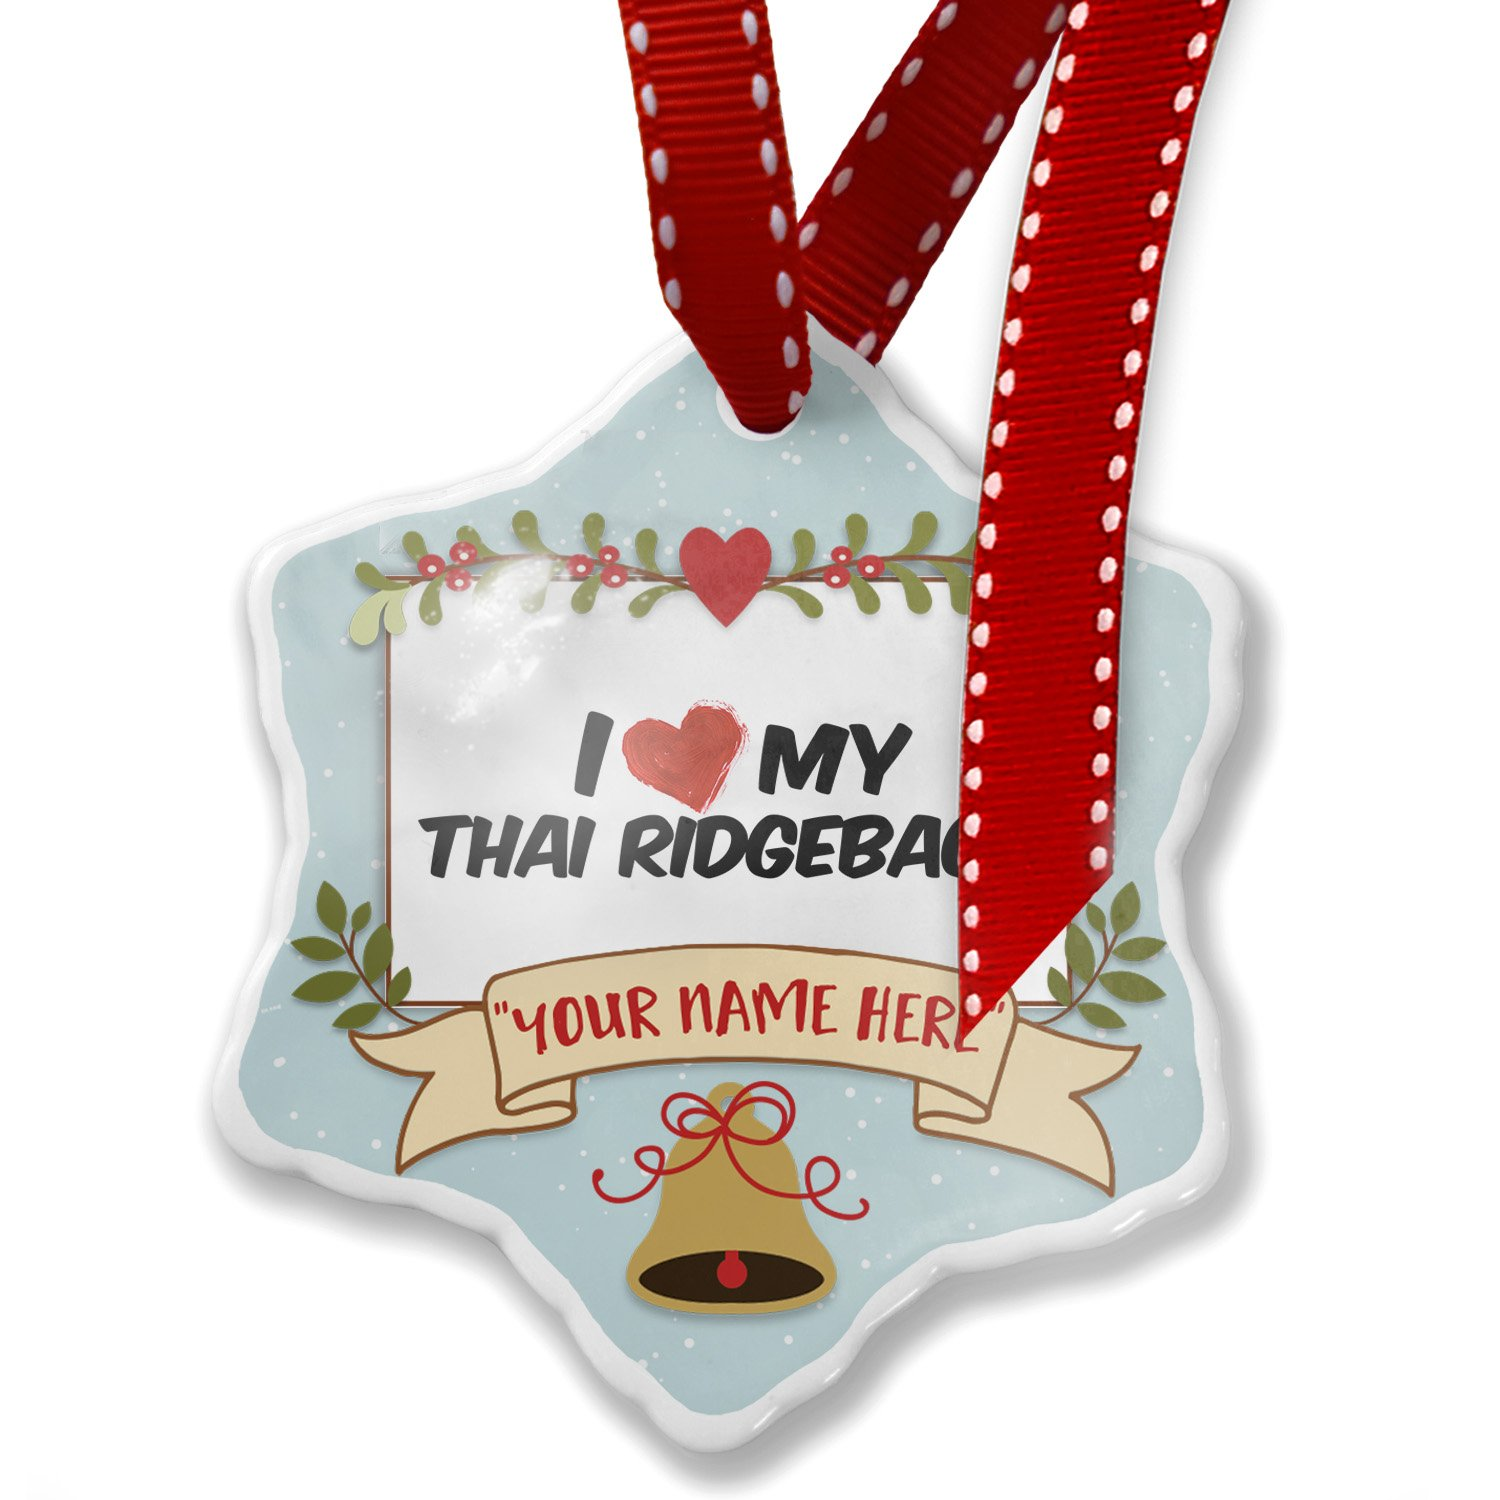 Add Your Own Custom Name, I Love my Thai Ridgeback Dog from Thailand Christmas Ornament NEONBLOND